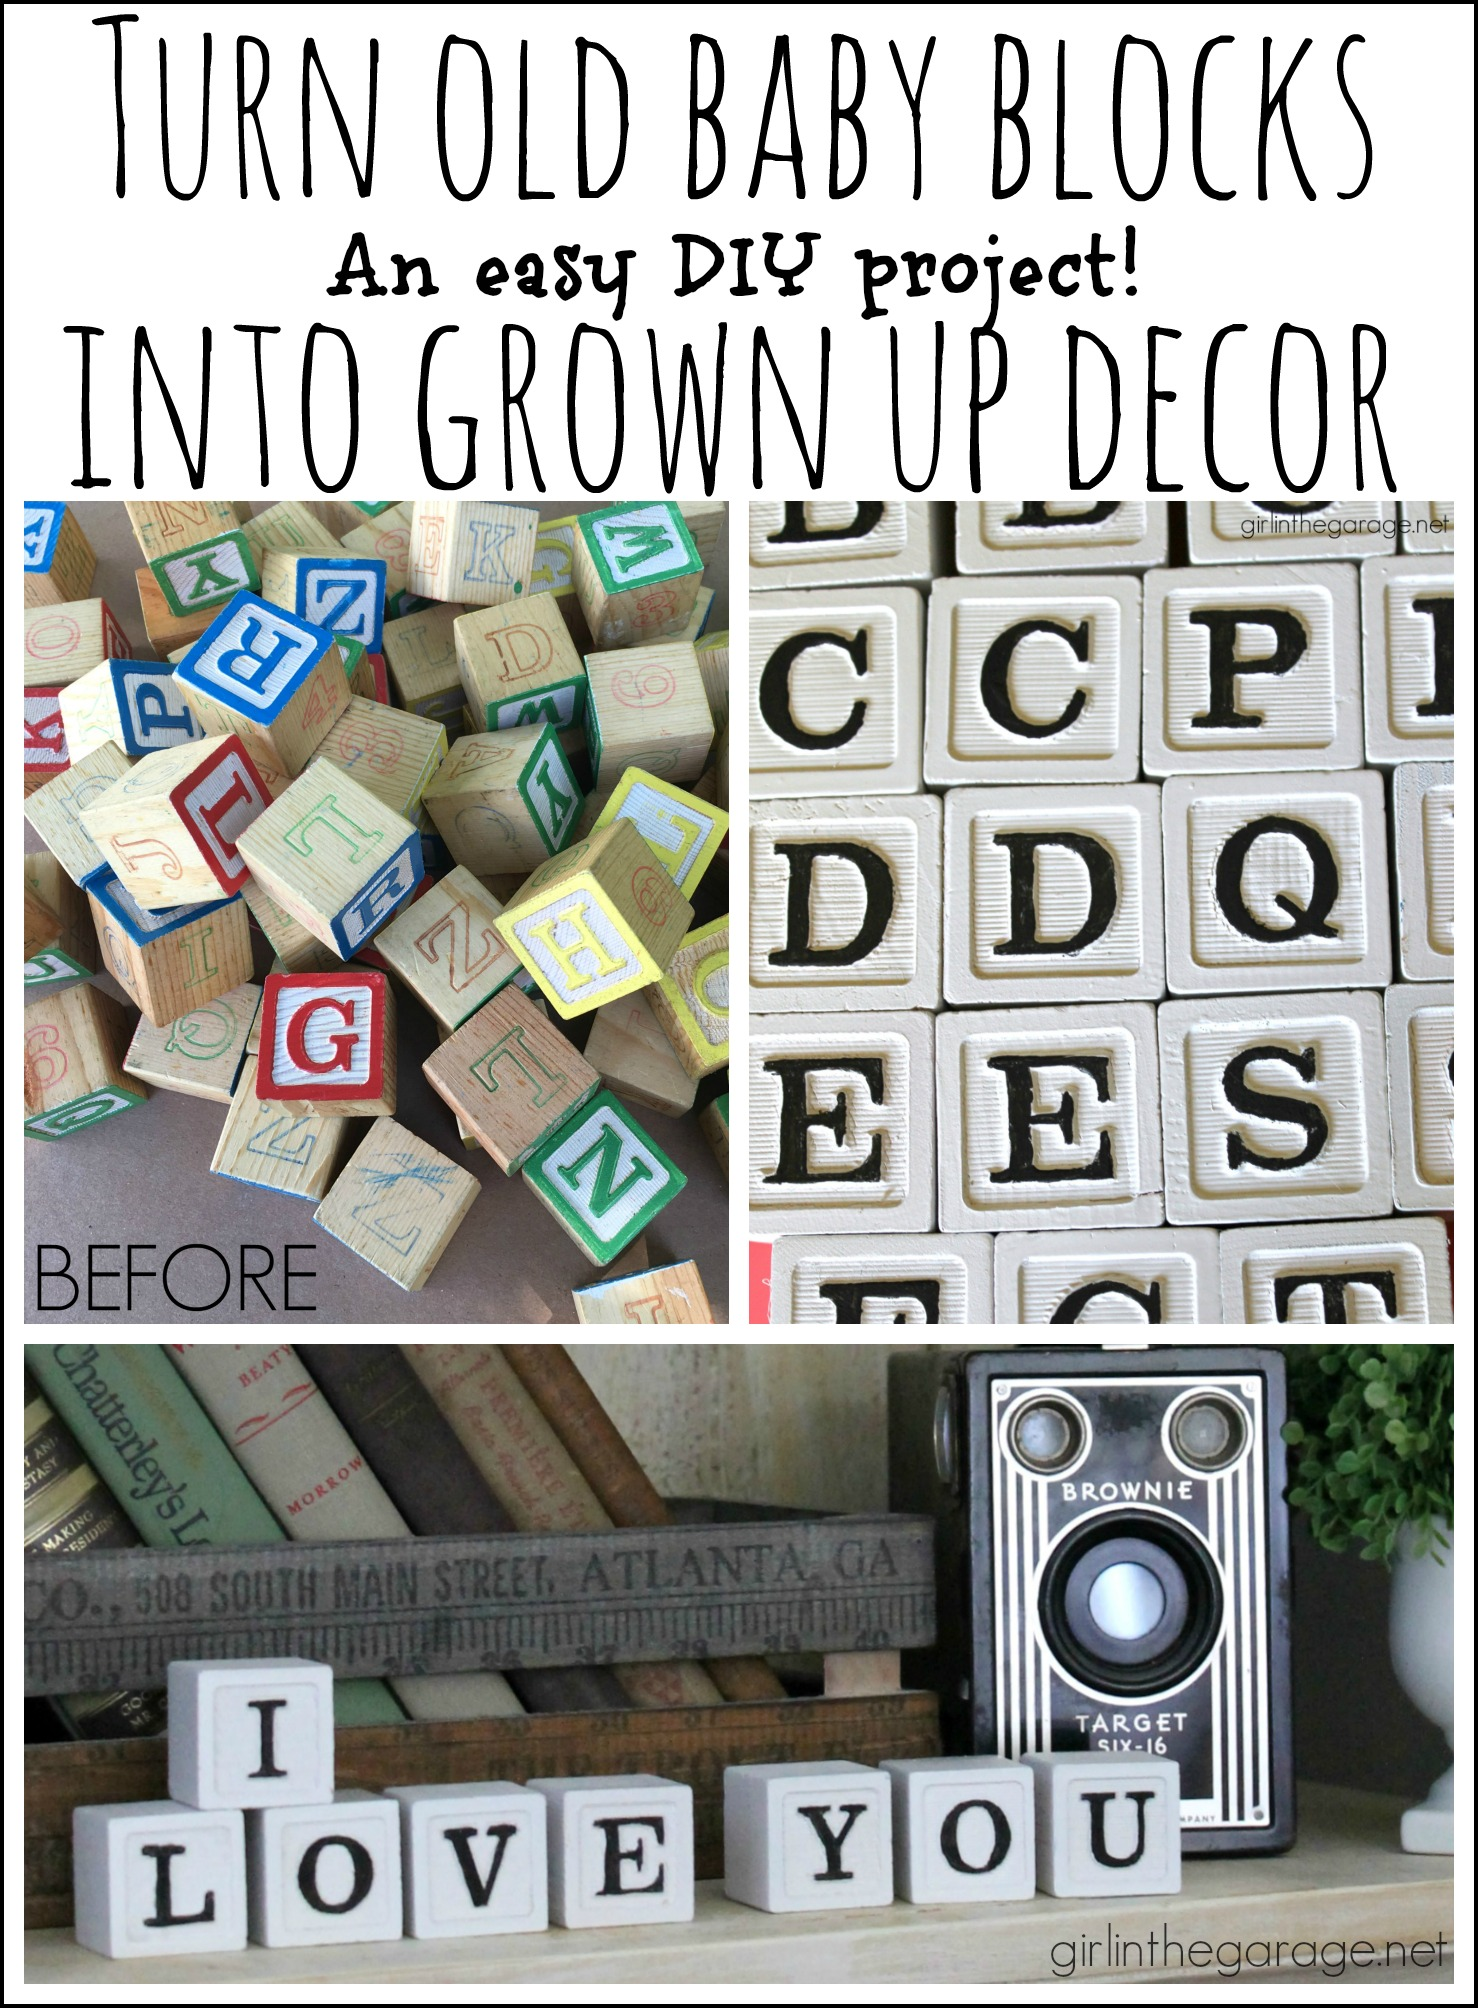 Upcycle baby blocks tutorial - Girl in the Garage